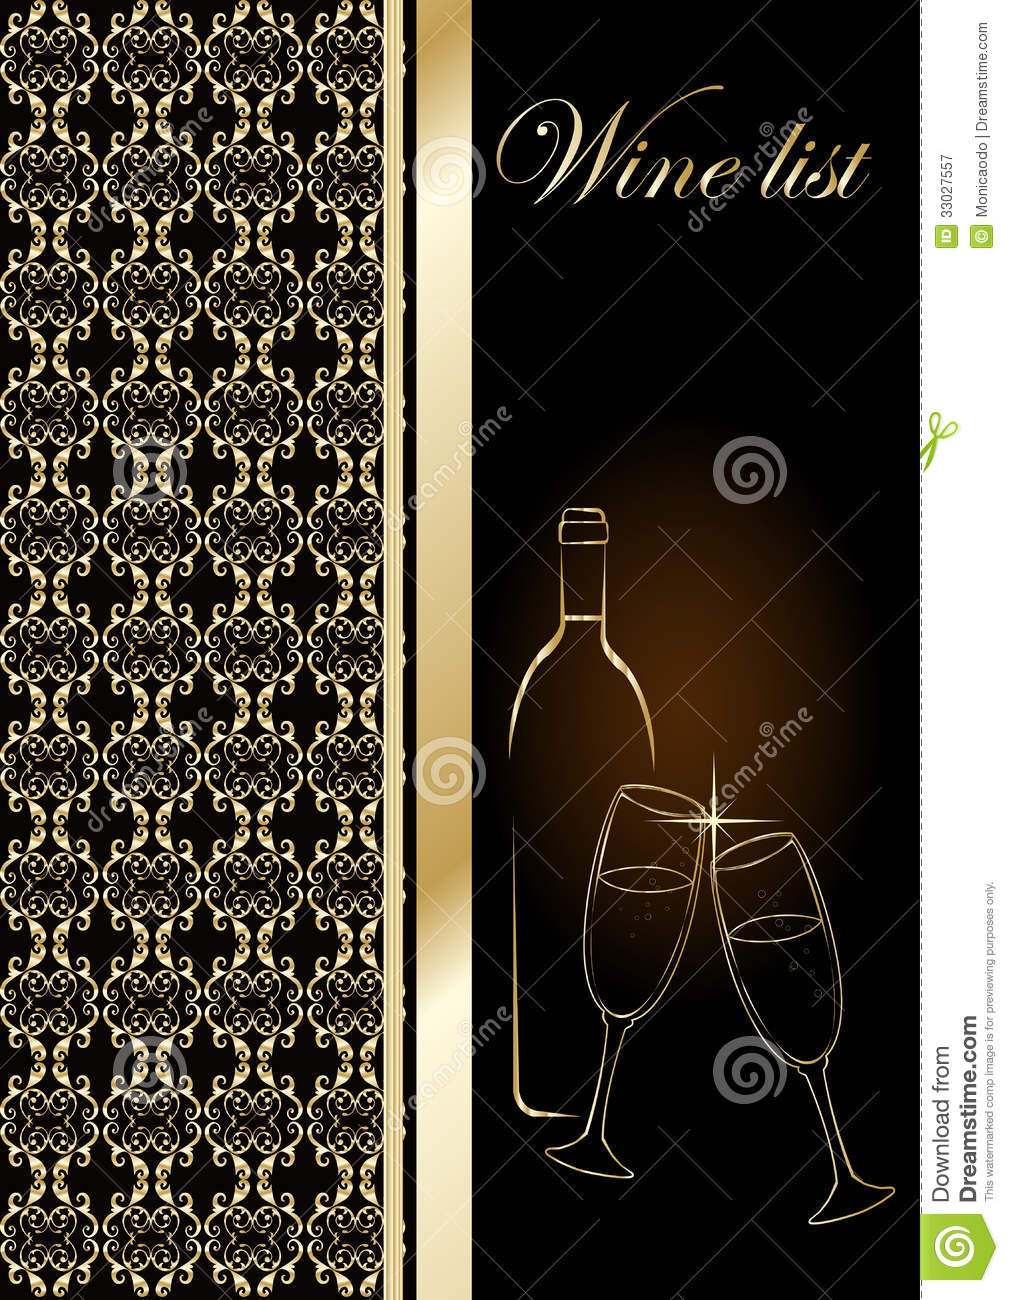 drinks menu stock vector illustration of frame design 33027557